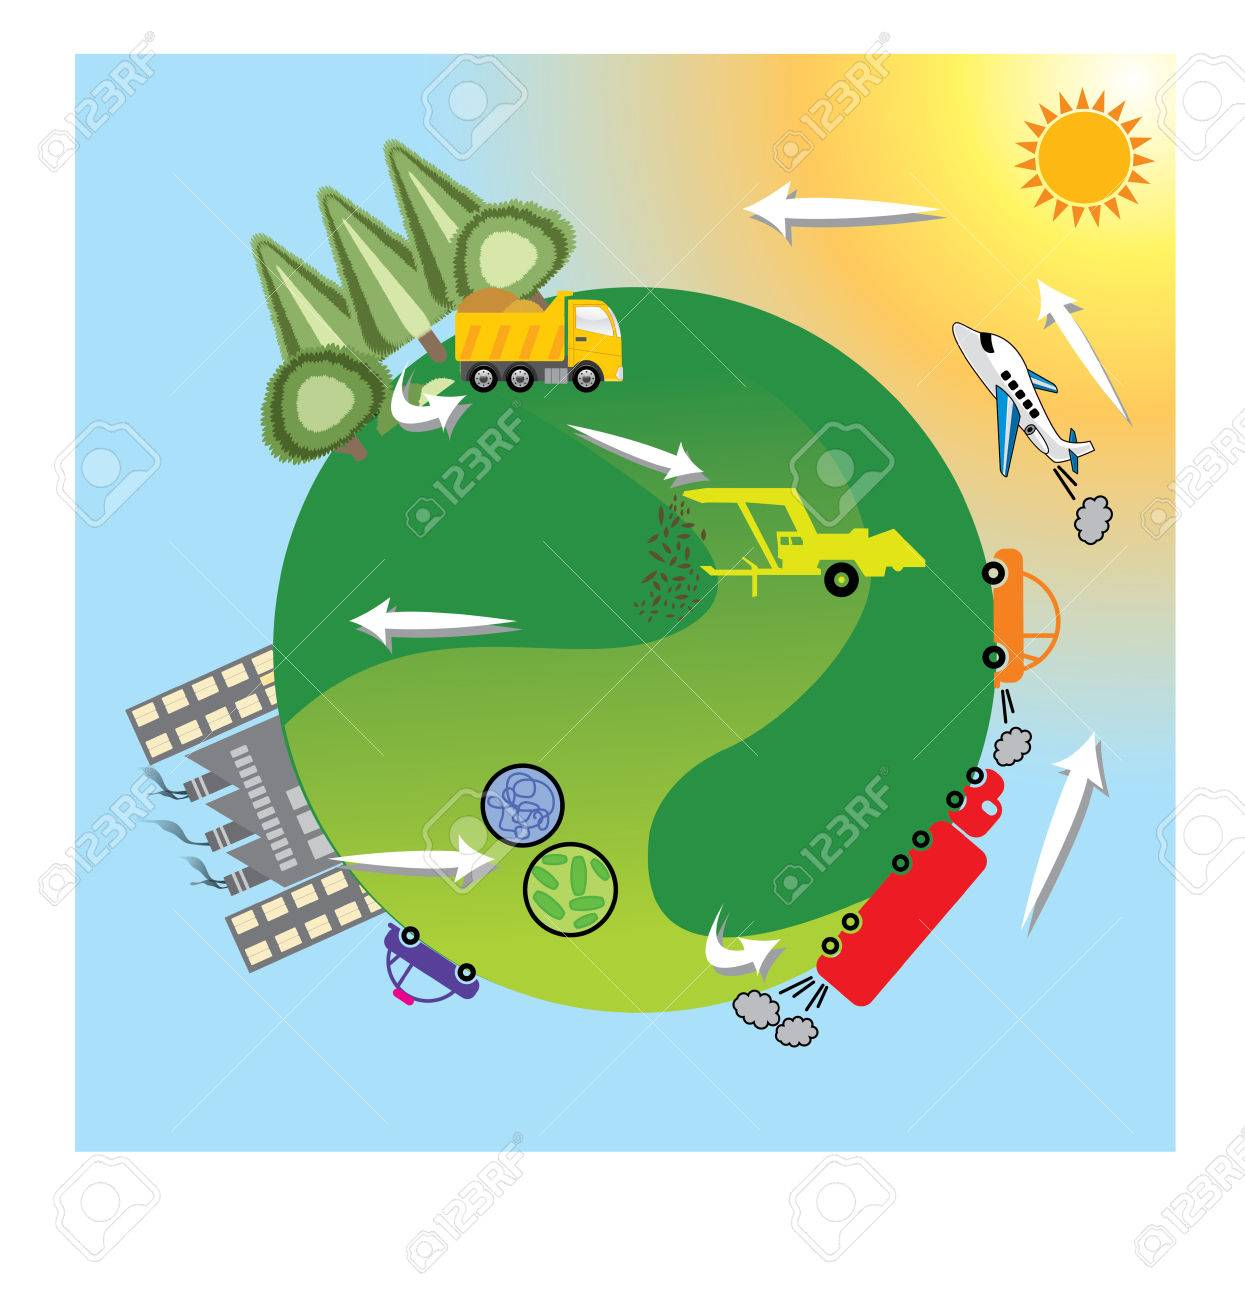 renewable energy is generally defined as energy that is collected